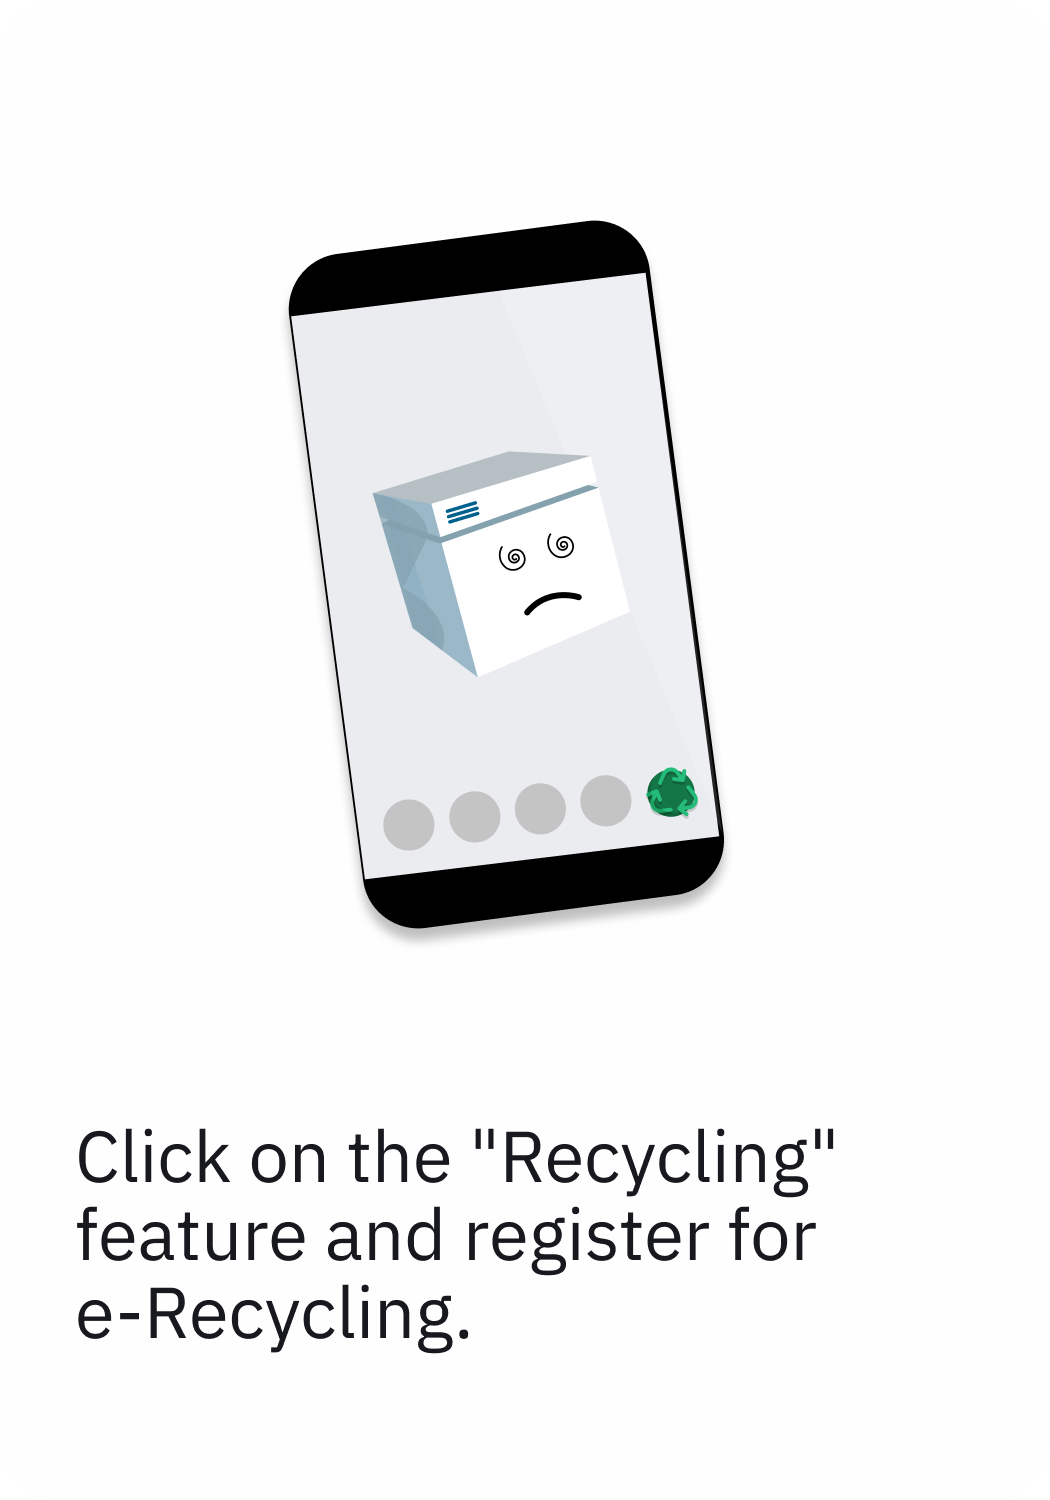 choose the recycling feature